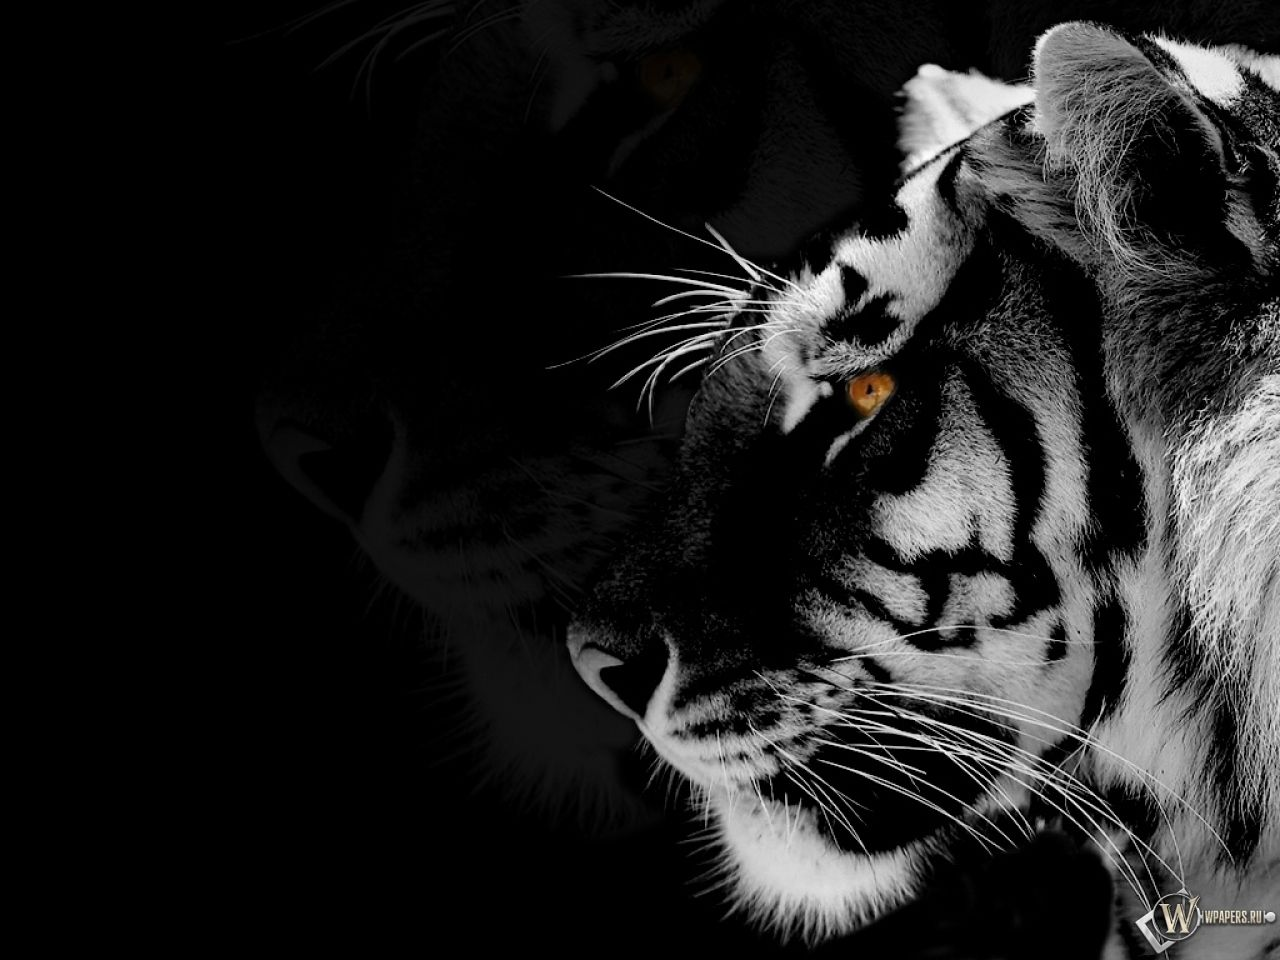 Full Hd Black And White Tiger Wallpaper